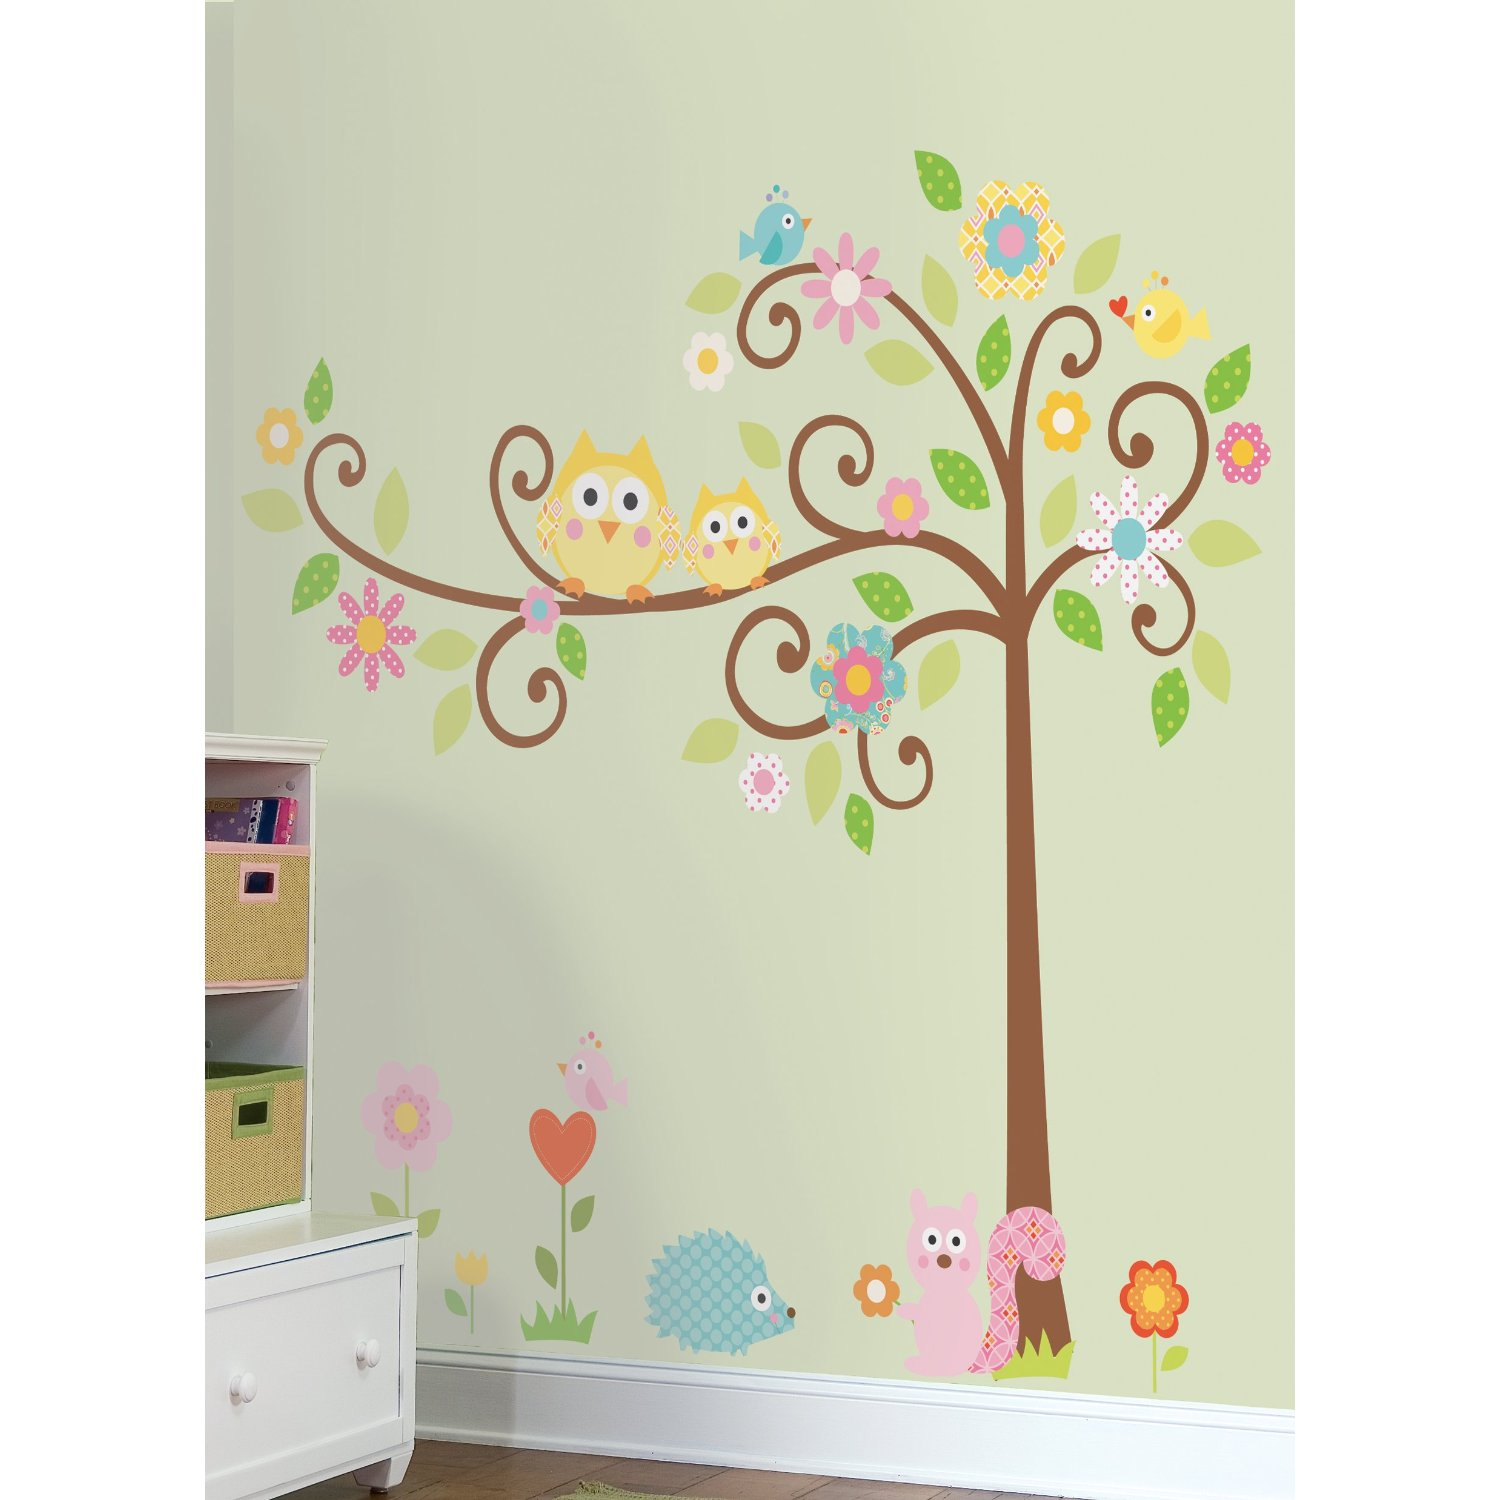 Baby Room Mural Ideas Of Nursery Room Ideas Nursery Wall Decals